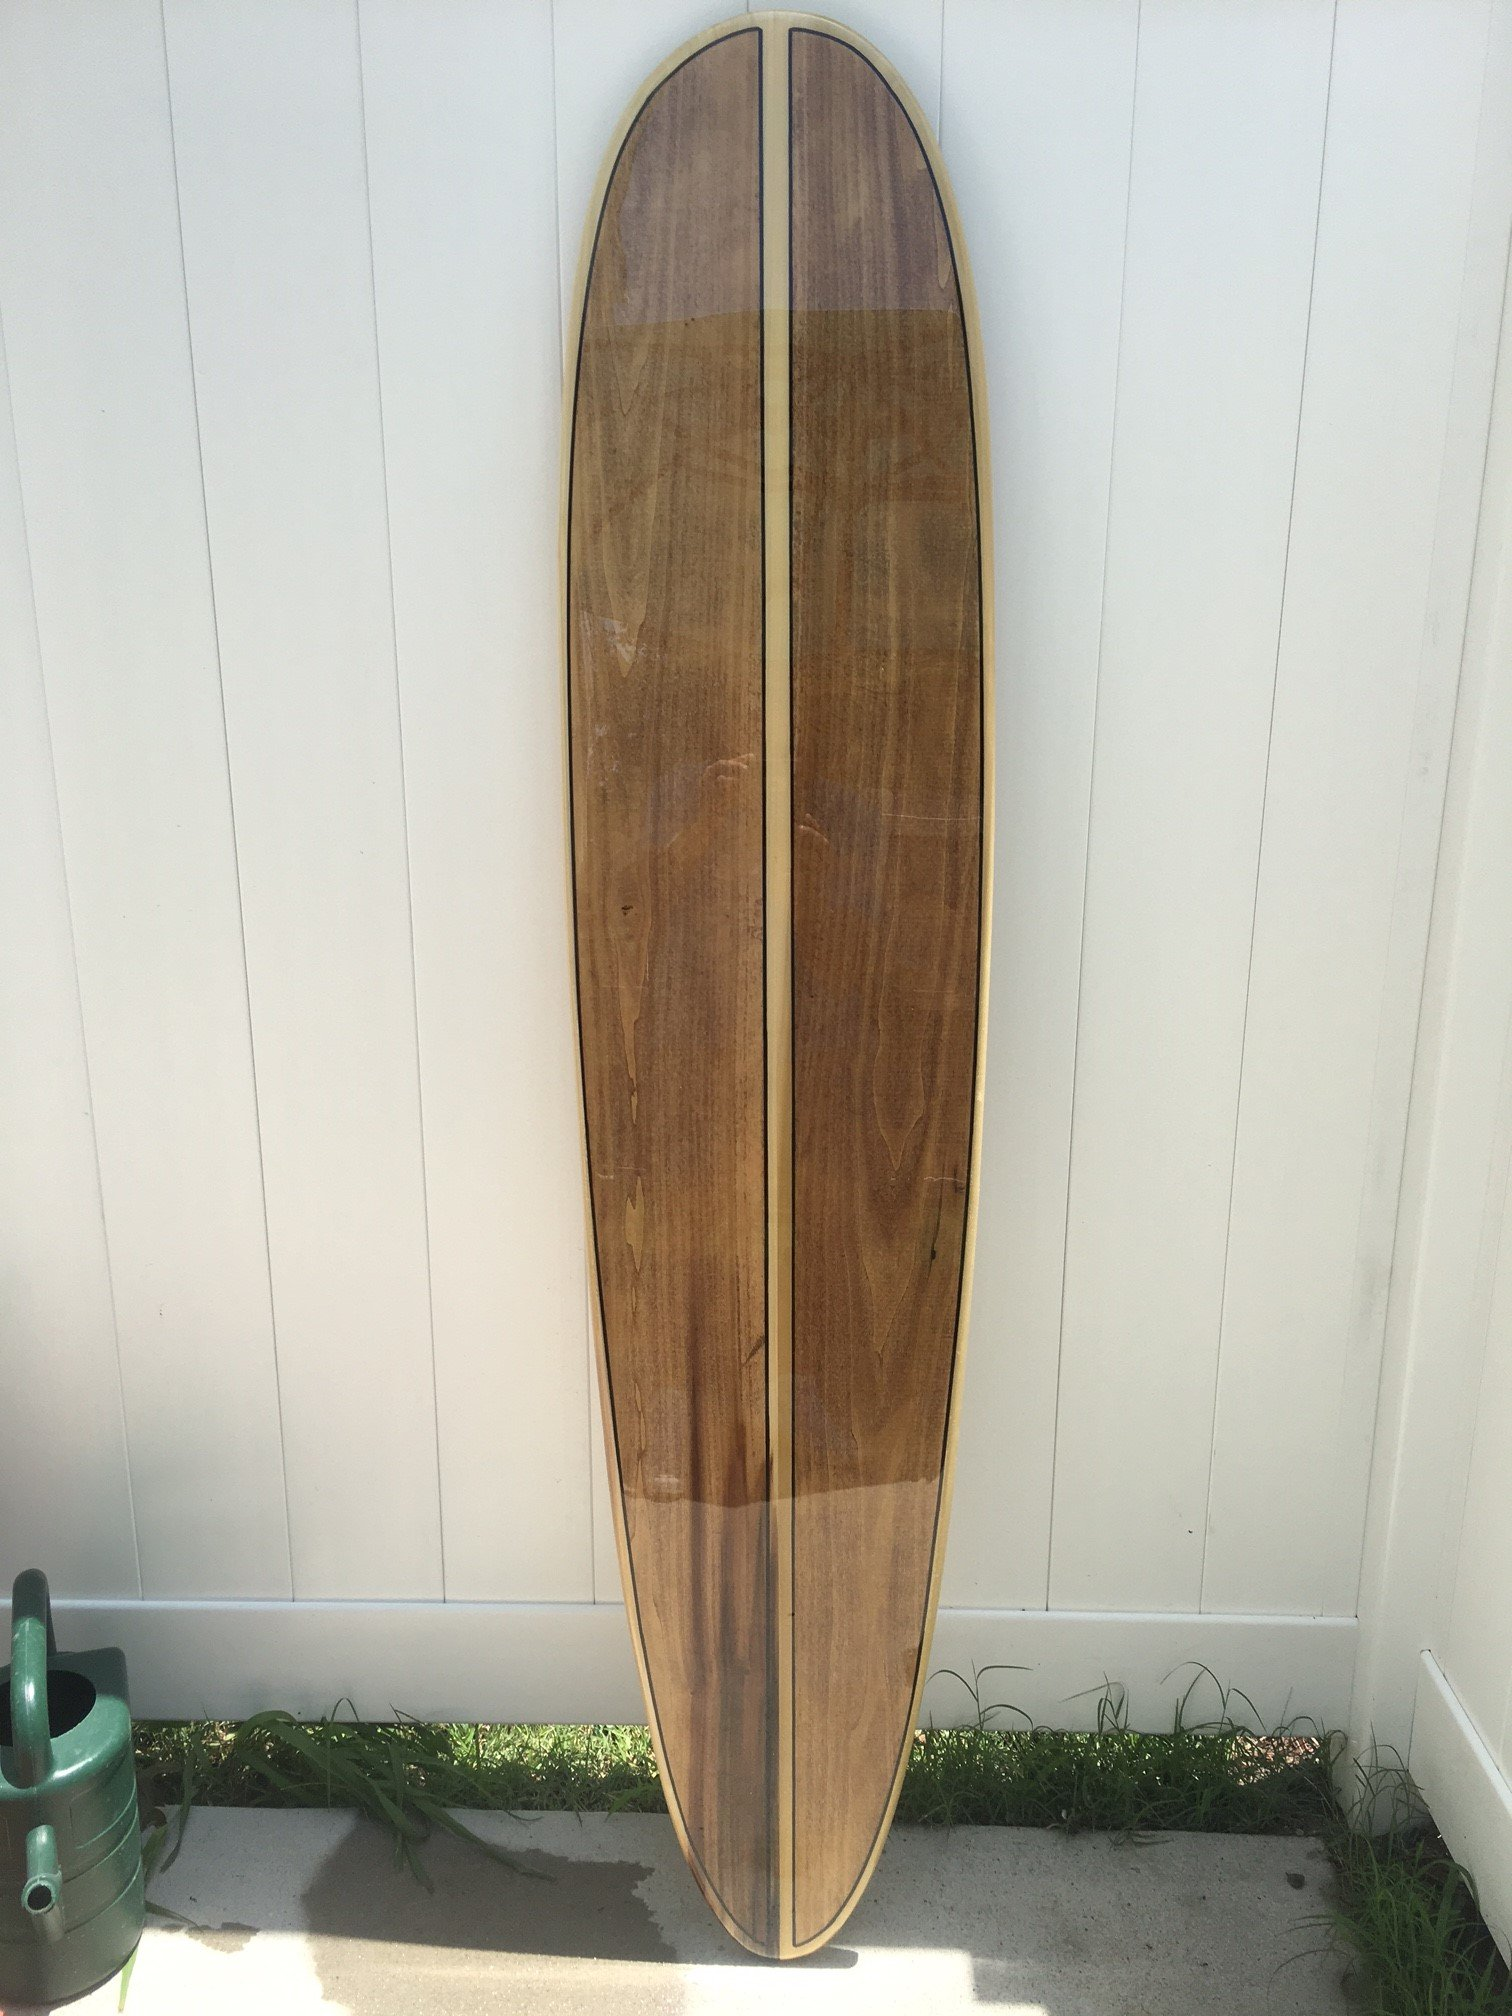 Five foot poplar surfboard wall hanging. Surfboard wall hanging. Surfboard décor.